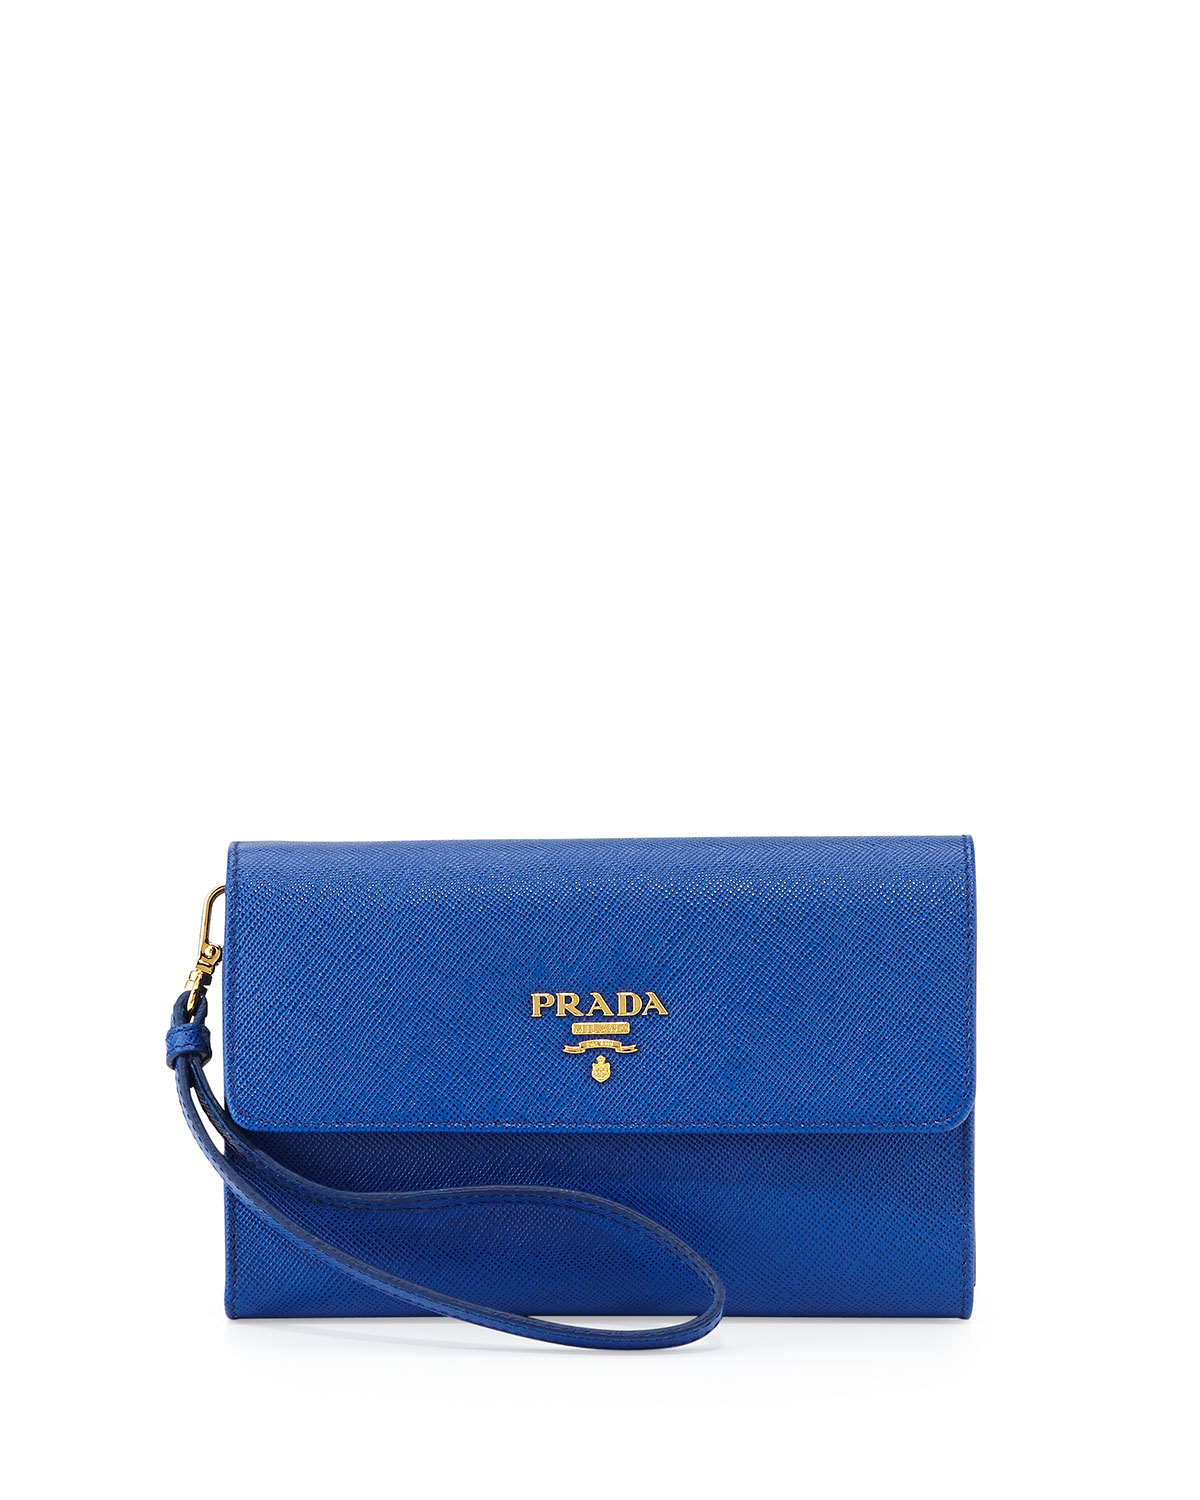 Prada Saffiano Wristlet Clutch Bag in Blue (ROYAL BLUE) | Lyst